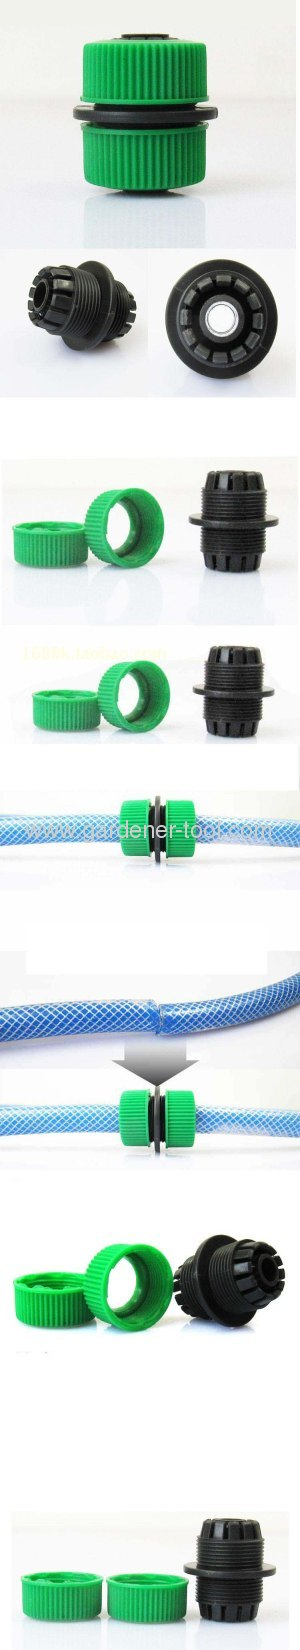 Plastic 1/2hose mender as garden hose connector for connectoring 2pcs 1/2PVC garden hose together